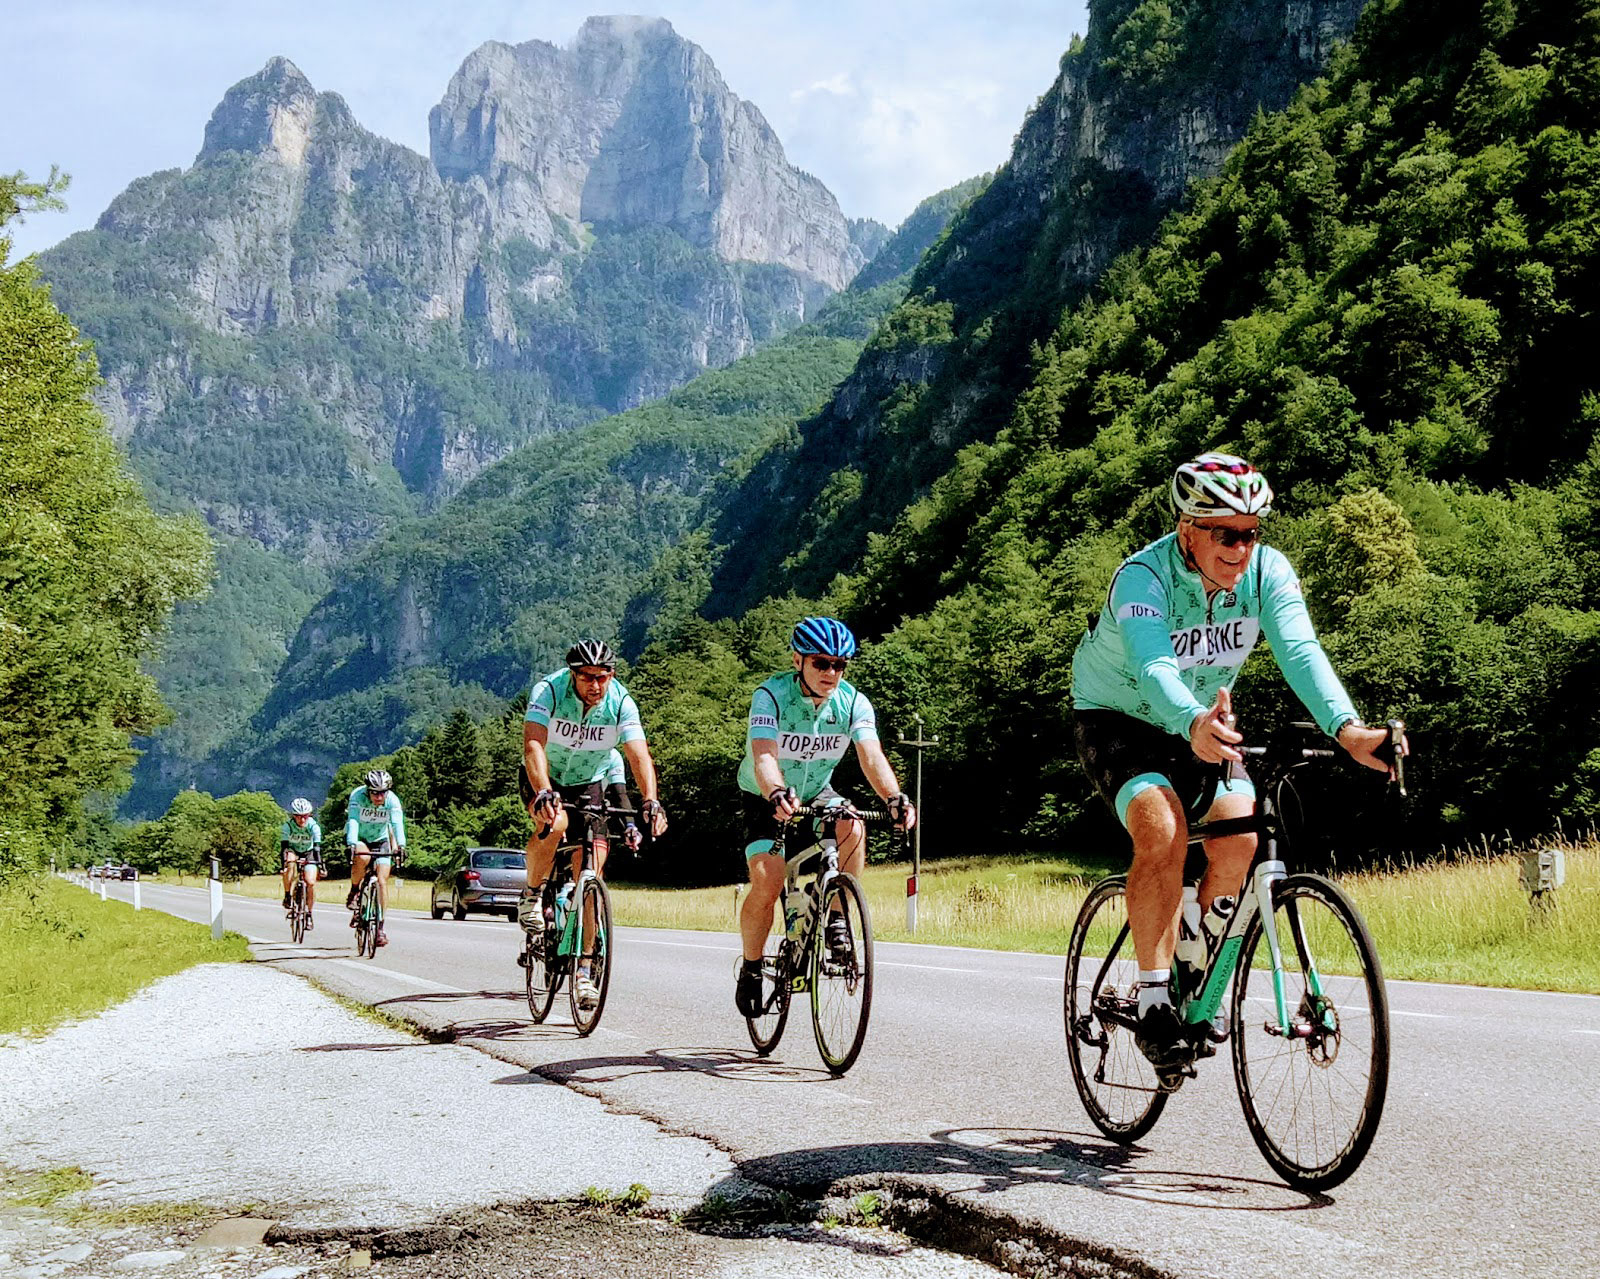 Cycling in the Dolomites - towards the Pass of San Boldo, Italy